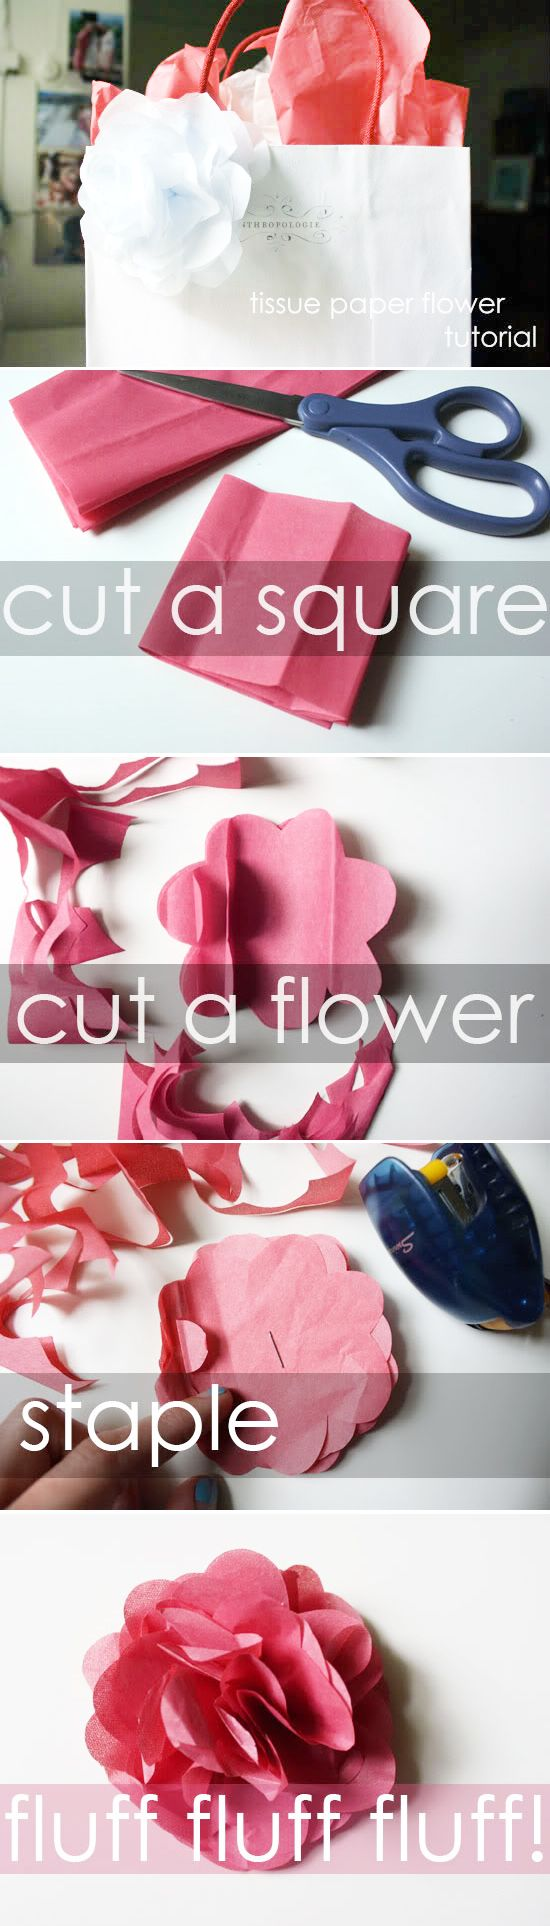 Tissue Paper Flower Craft Ideas Pinterest Sobres De Papel